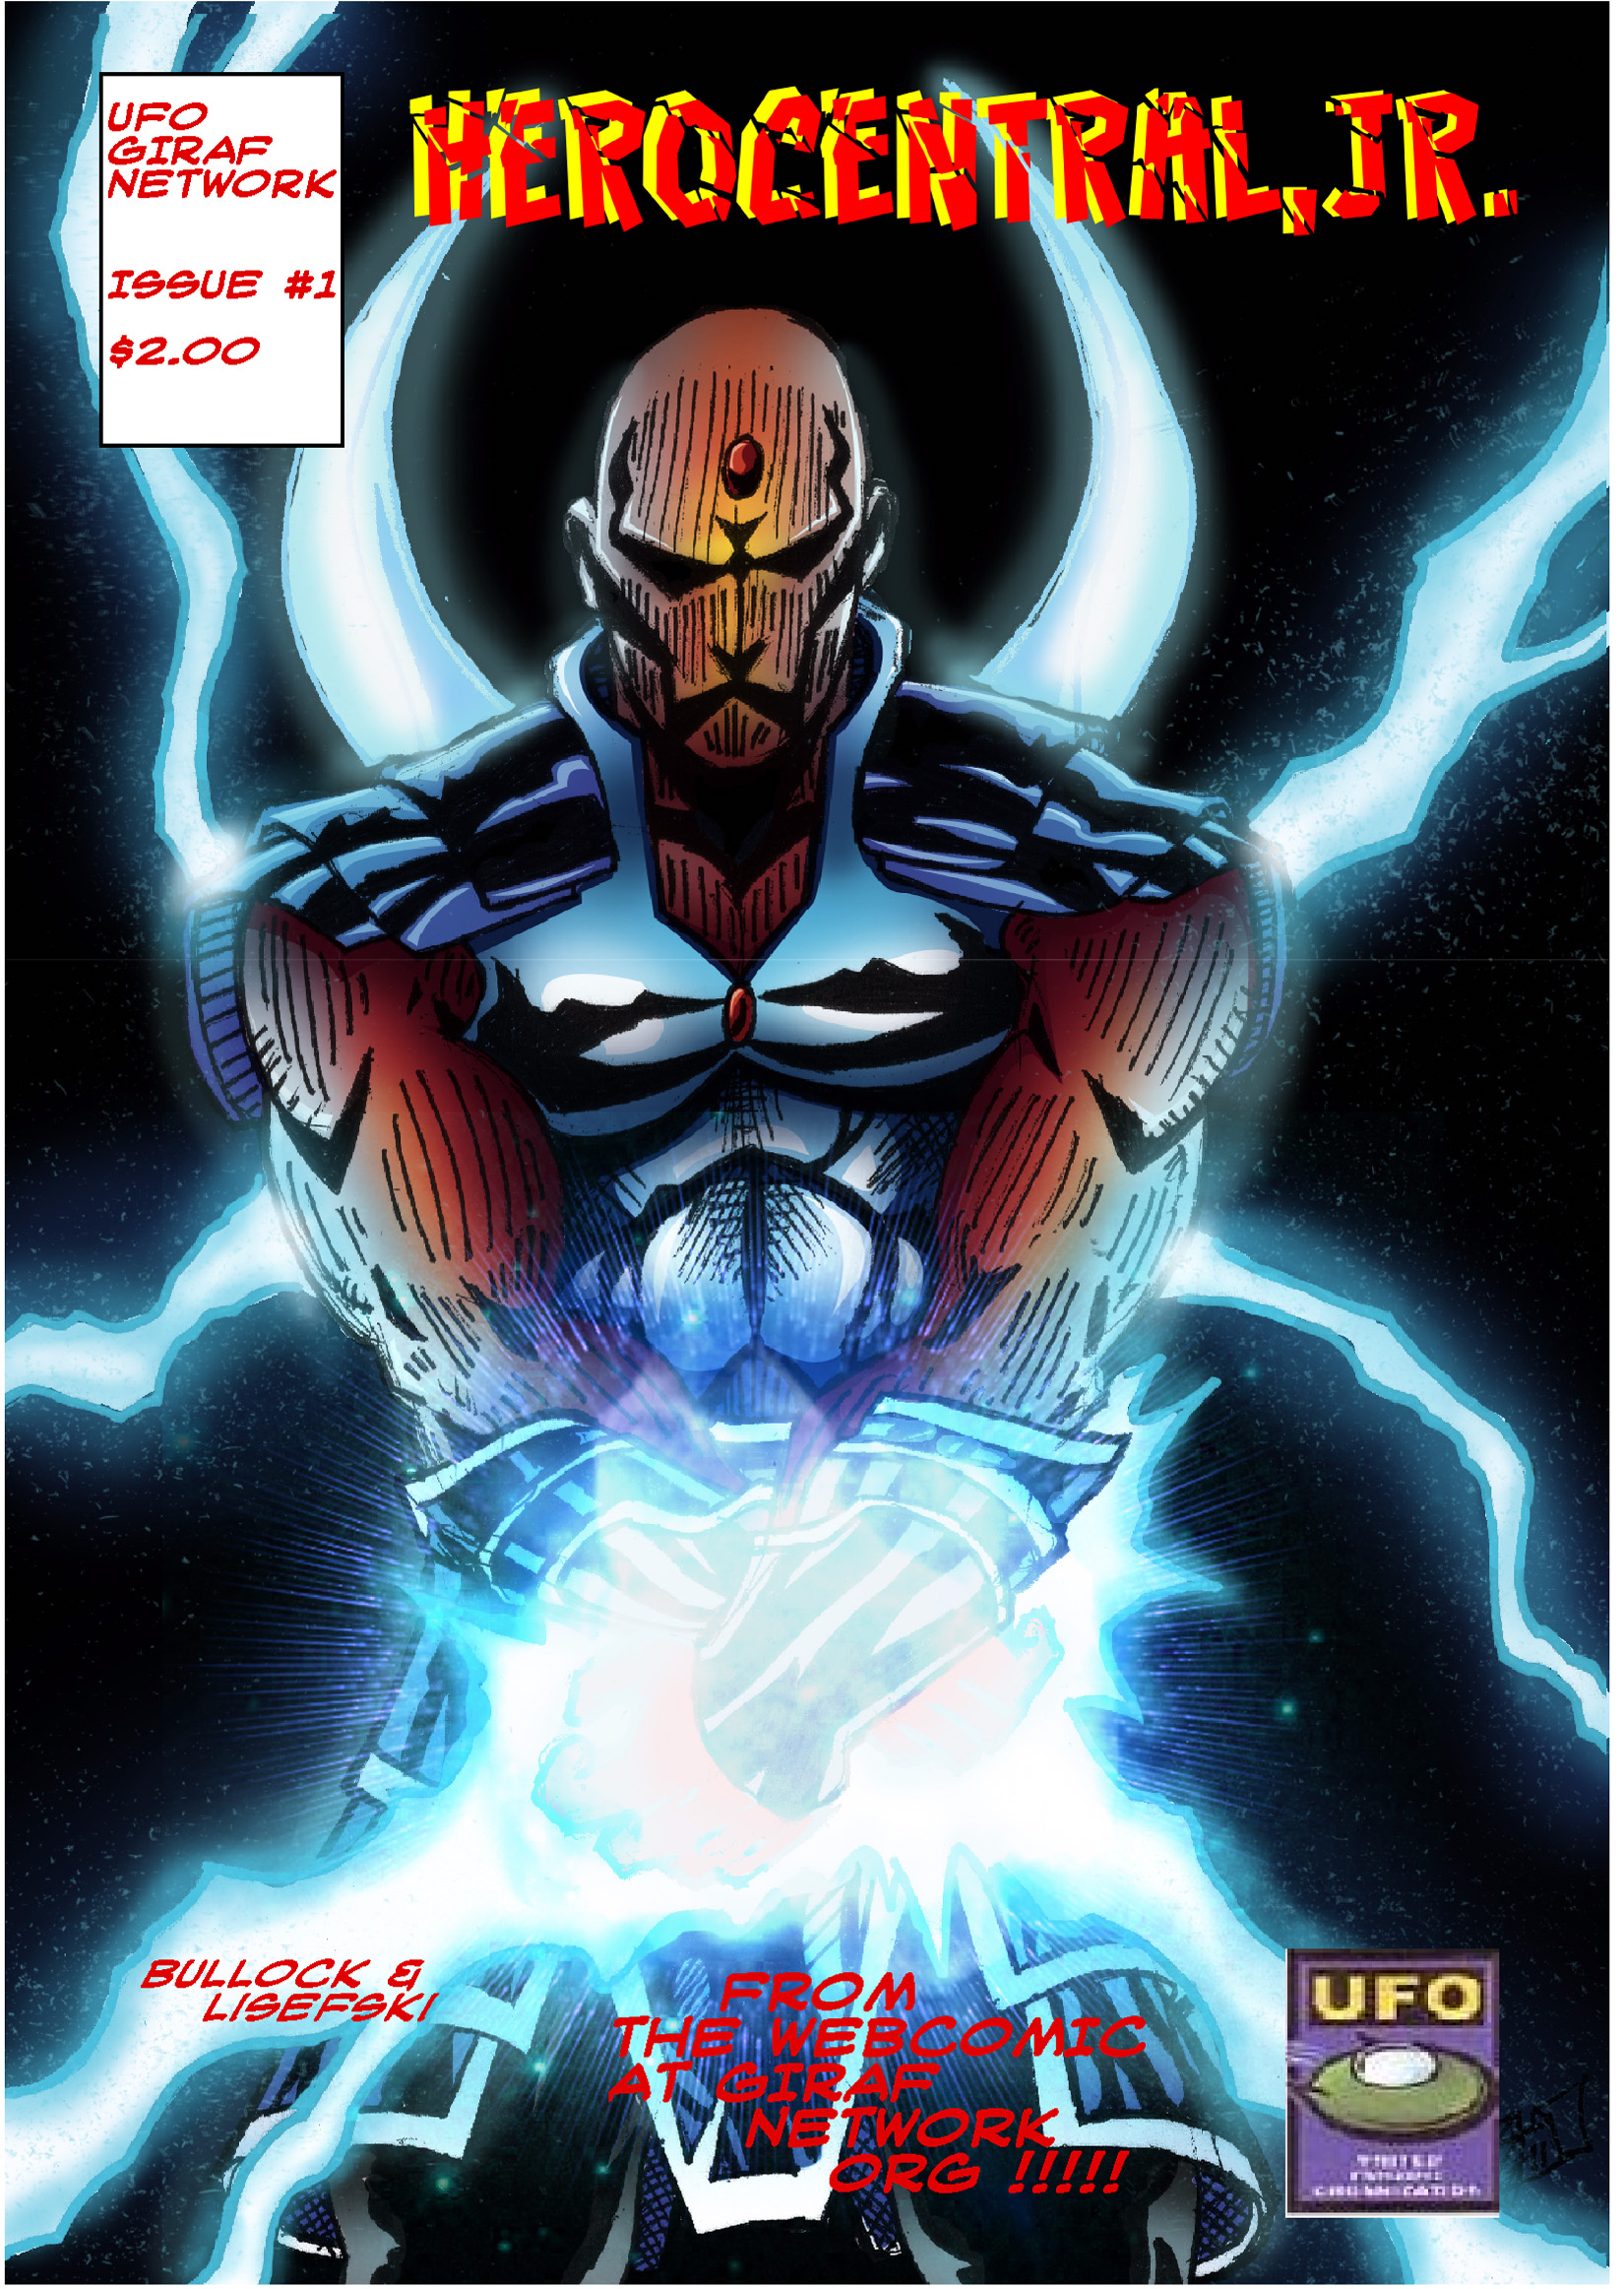 Hero Central warrior Raiden has chosen several proteges to carry on the fight against the evil of Kraken. They nicknamed themselves Hero Central, Jr. Mini-series, Issue 1 of 4. Available at $2.00 for hard copy, $1.49 for digital copy. Co-published by UFO.